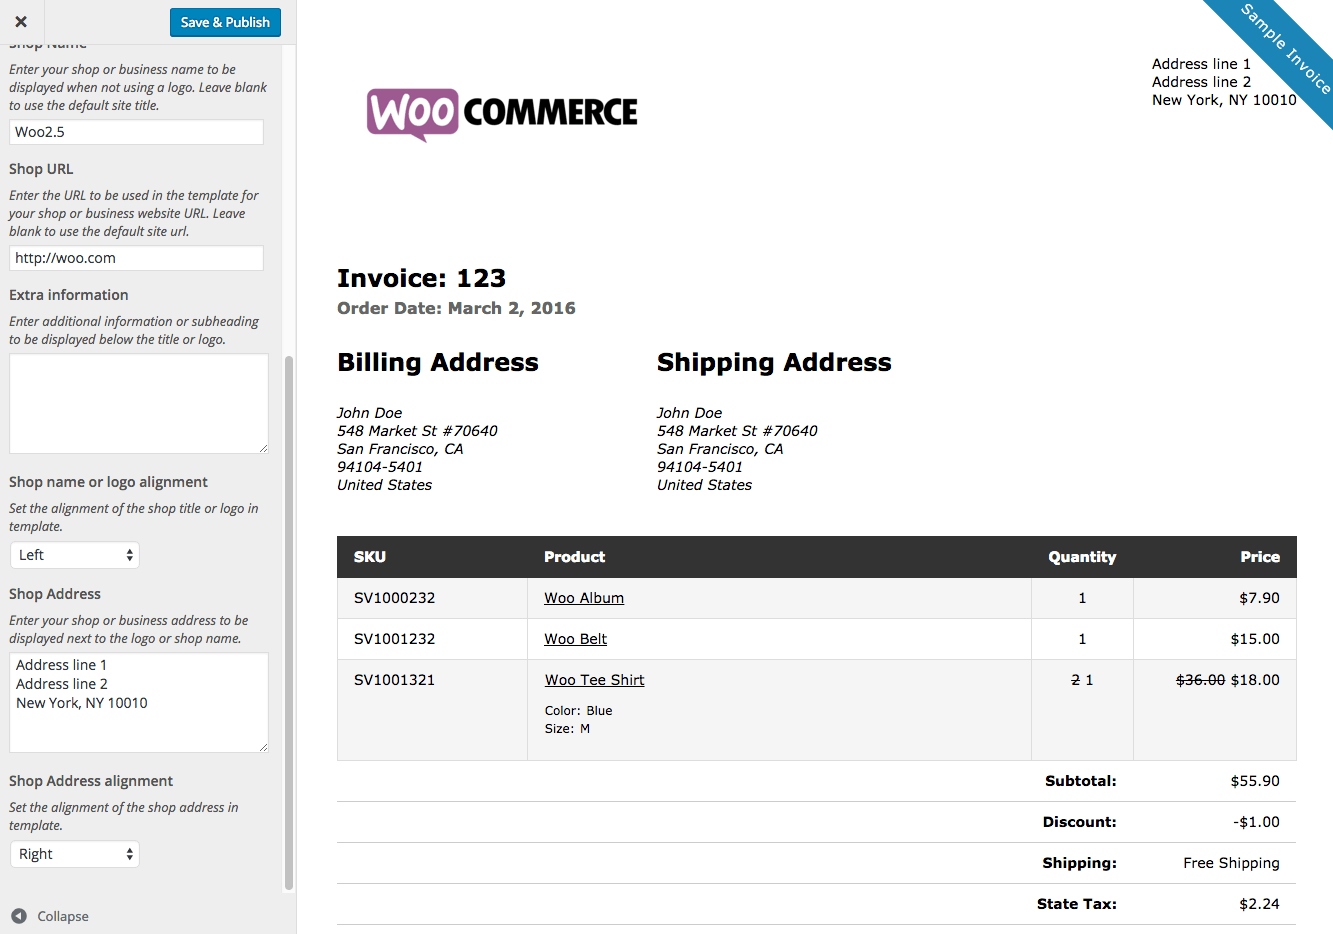 Ultrablogus  Outstanding Woocommerce Print Invoices Amp Packing Lists  Woocommerce Docs With Engaging Woocommerce Print Invoices  Packing Lists Customizer With Amazing Neat Receipts Manual Also Hmrc Vat Receipt In Addition Certified Mail Rates Return Receipt And Rrsp Receipt As Well As Gdr Global Depositary Receipt Additionally Blank Receipt To Print From Docswoocommercecom With Ultrablogus  Engaging Woocommerce Print Invoices Amp Packing Lists  Woocommerce Docs With Amazing Woocommerce Print Invoices  Packing Lists Customizer And Outstanding Neat Receipts Manual Also Hmrc Vat Receipt In Addition Certified Mail Rates Return Receipt From Docswoocommercecom